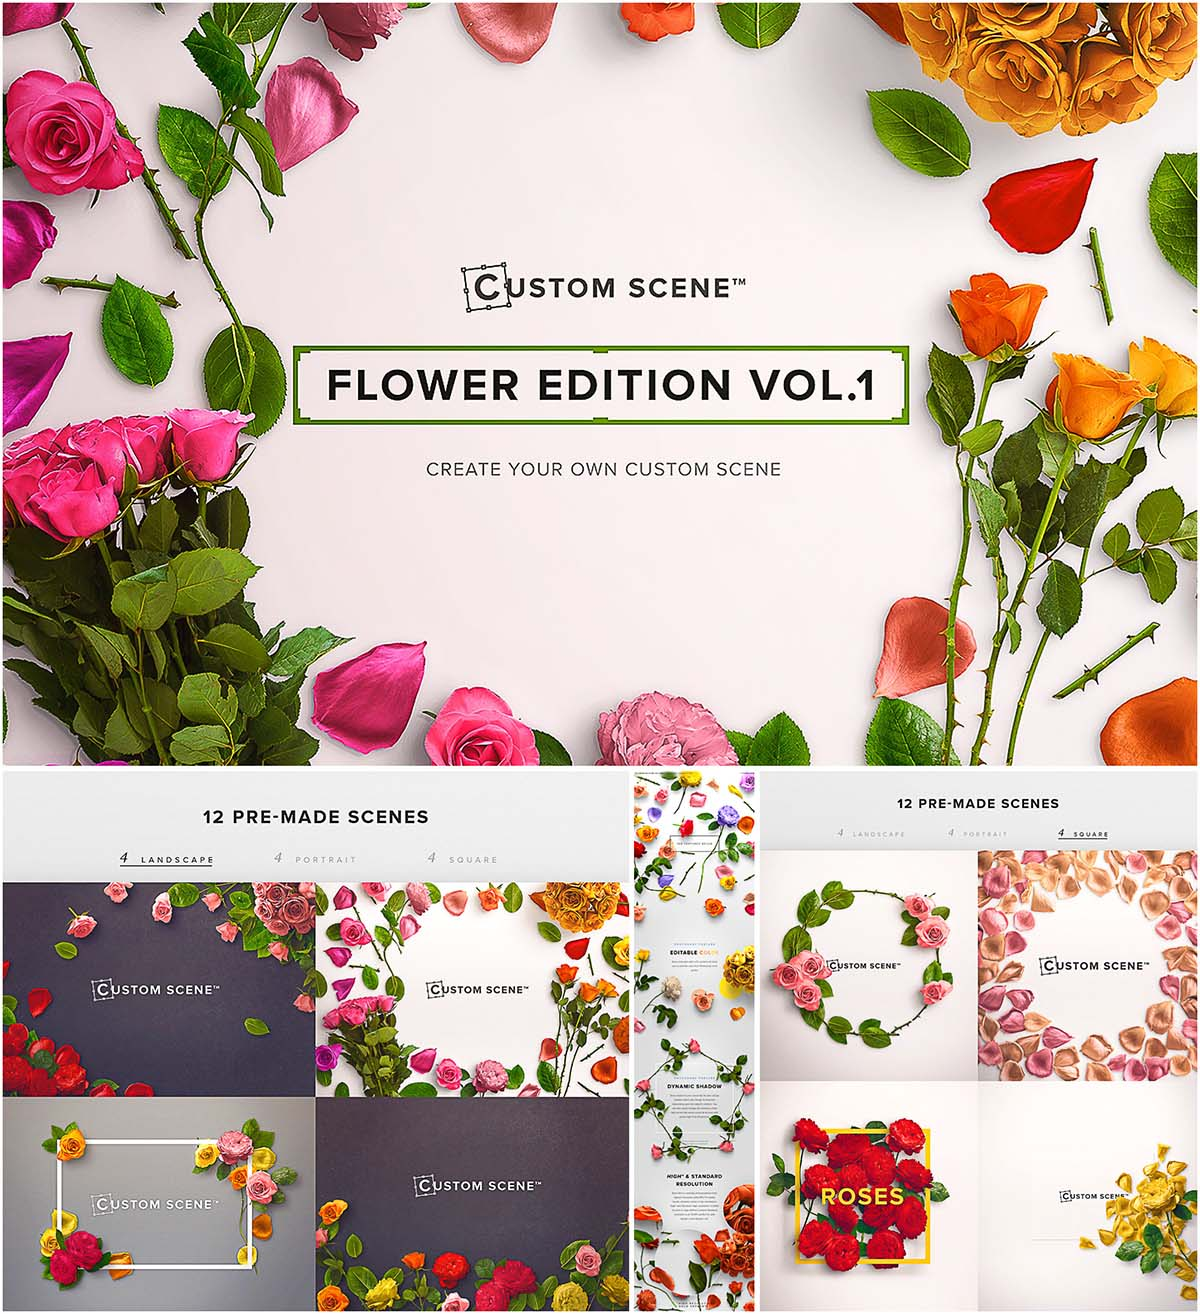 Flower edition custom scene